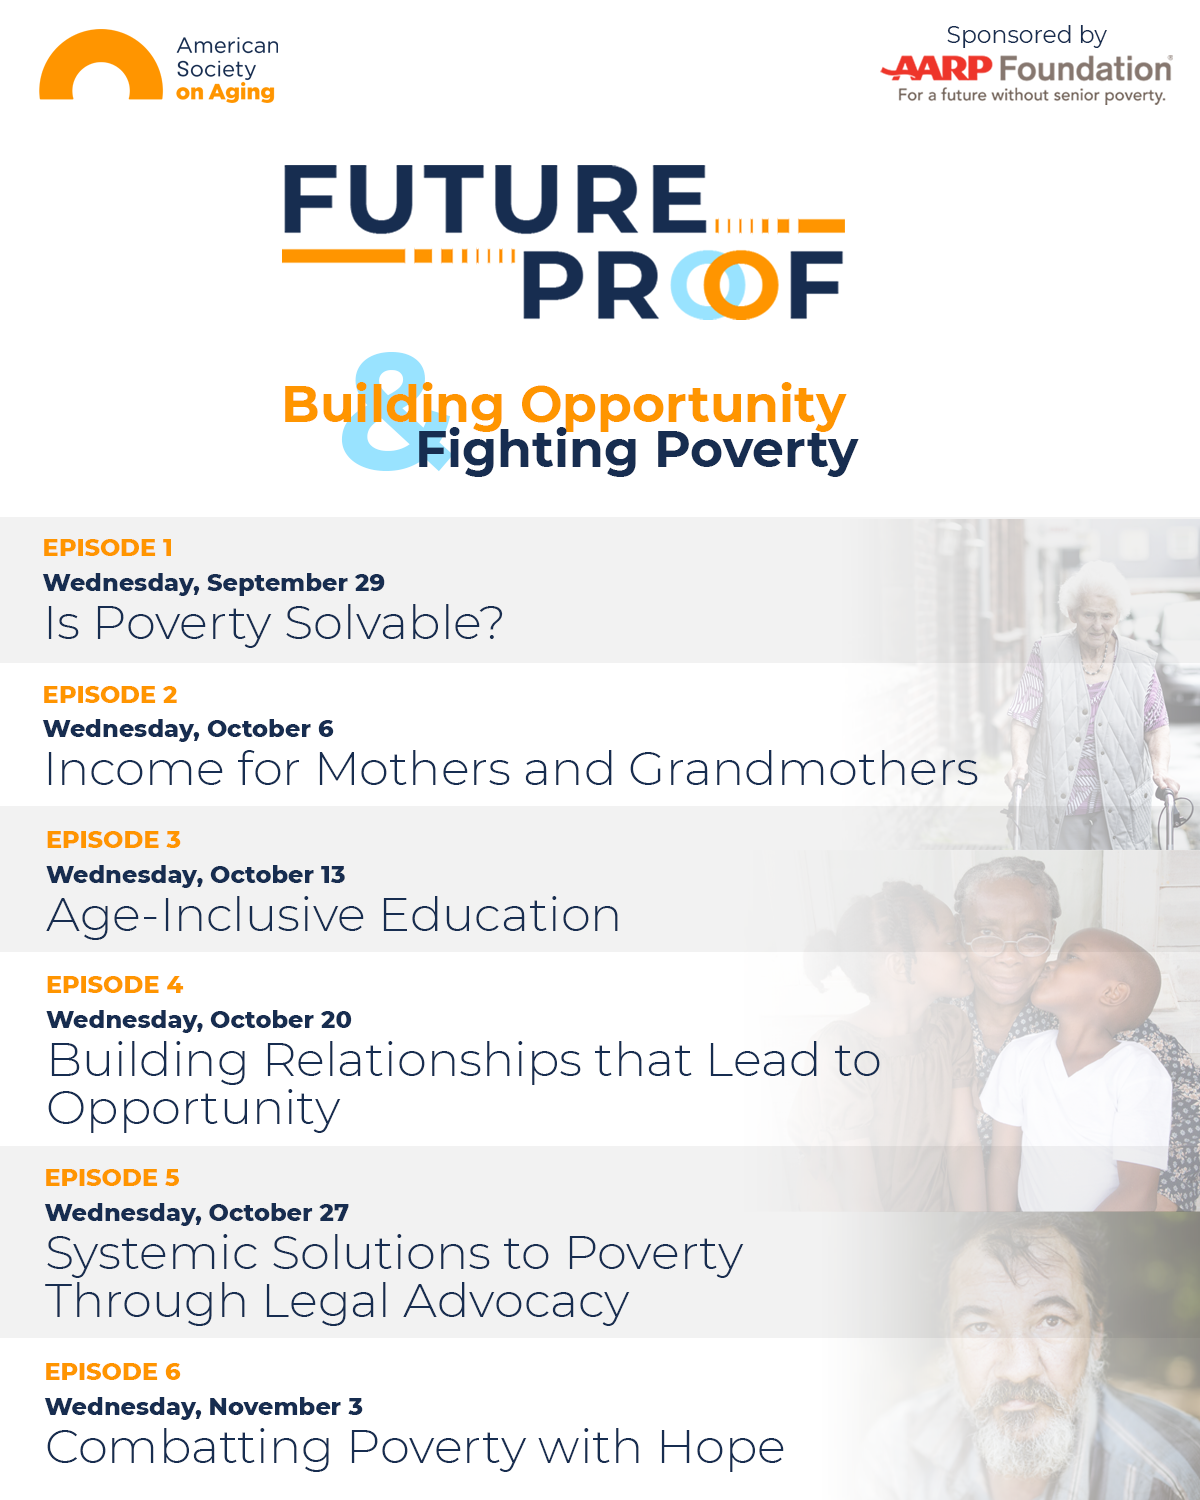 Episode Guide: Episode 1: Wed Sept 29 - Is Poverty Solvable? Episode 2: Wed Oct 6 - Income for Mothers and Grandmothers Episode 3: Wed Oct 13 - Age-Inclusive Education Episode 4: Wed Oct 20 - Building Relationships that Lead to Opportunity Episode 5: Wed Oct 27 - Systemic Solutions to Poverty through Legal Advocacy Episode 6: Wed Nov 3 - Combatting Poverty with Hope